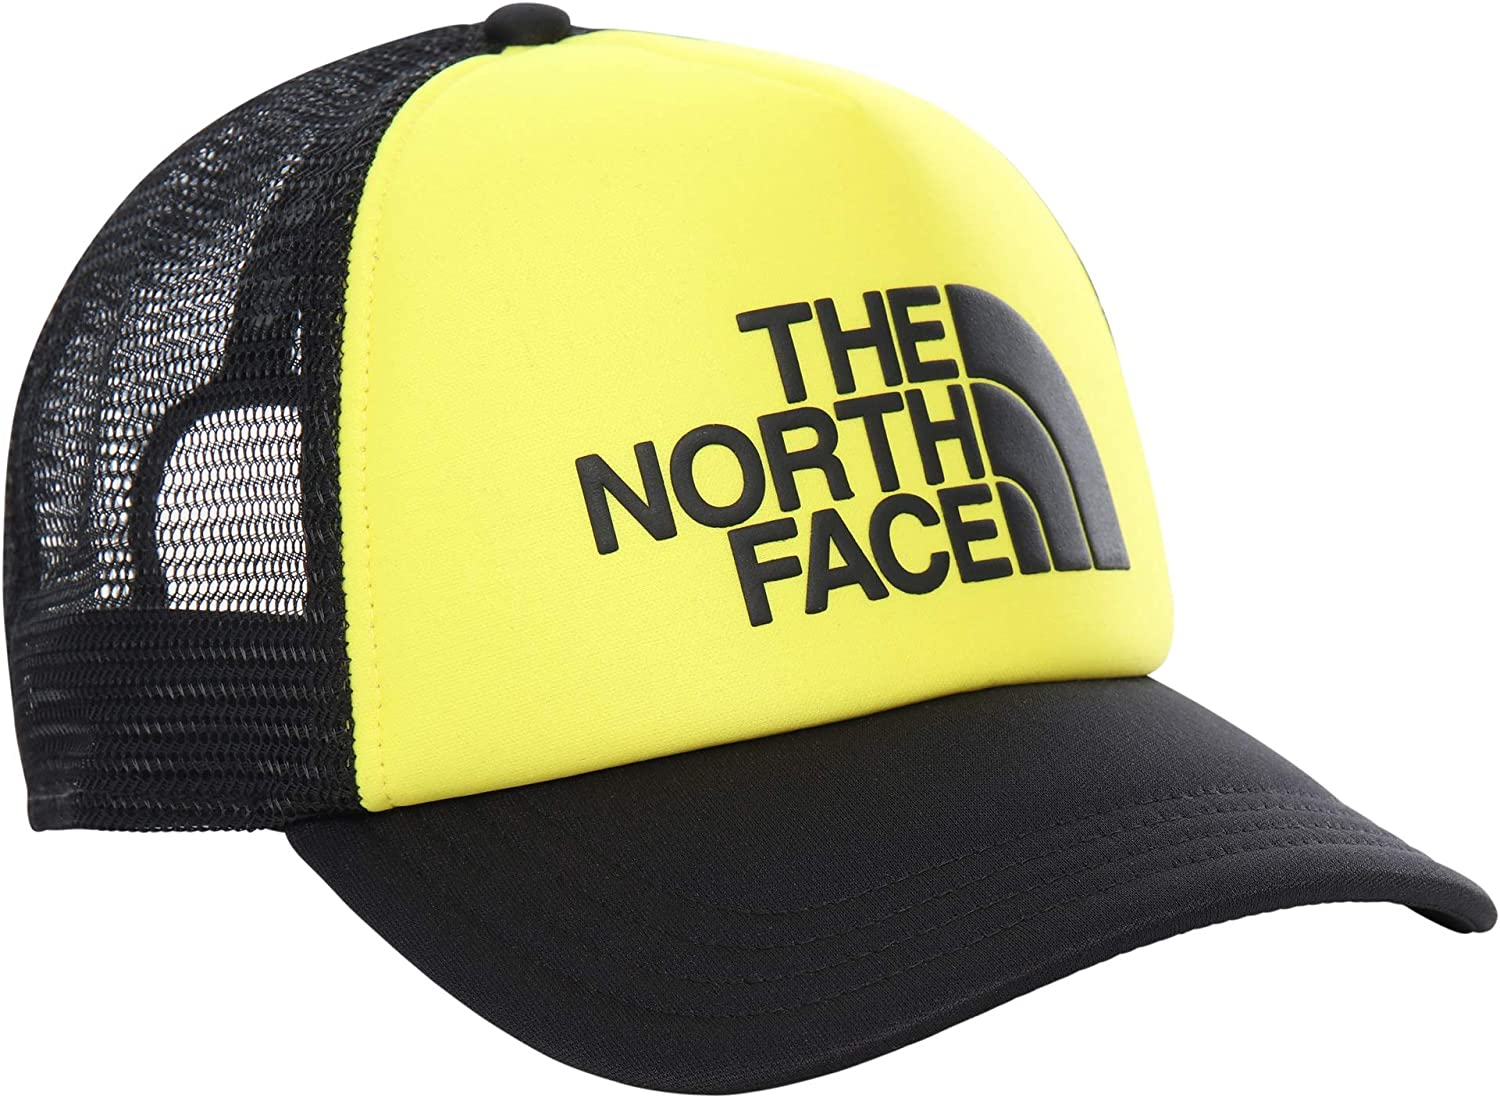 The North Face Logo Gorra: Amazon.es: Deportes y aire libre